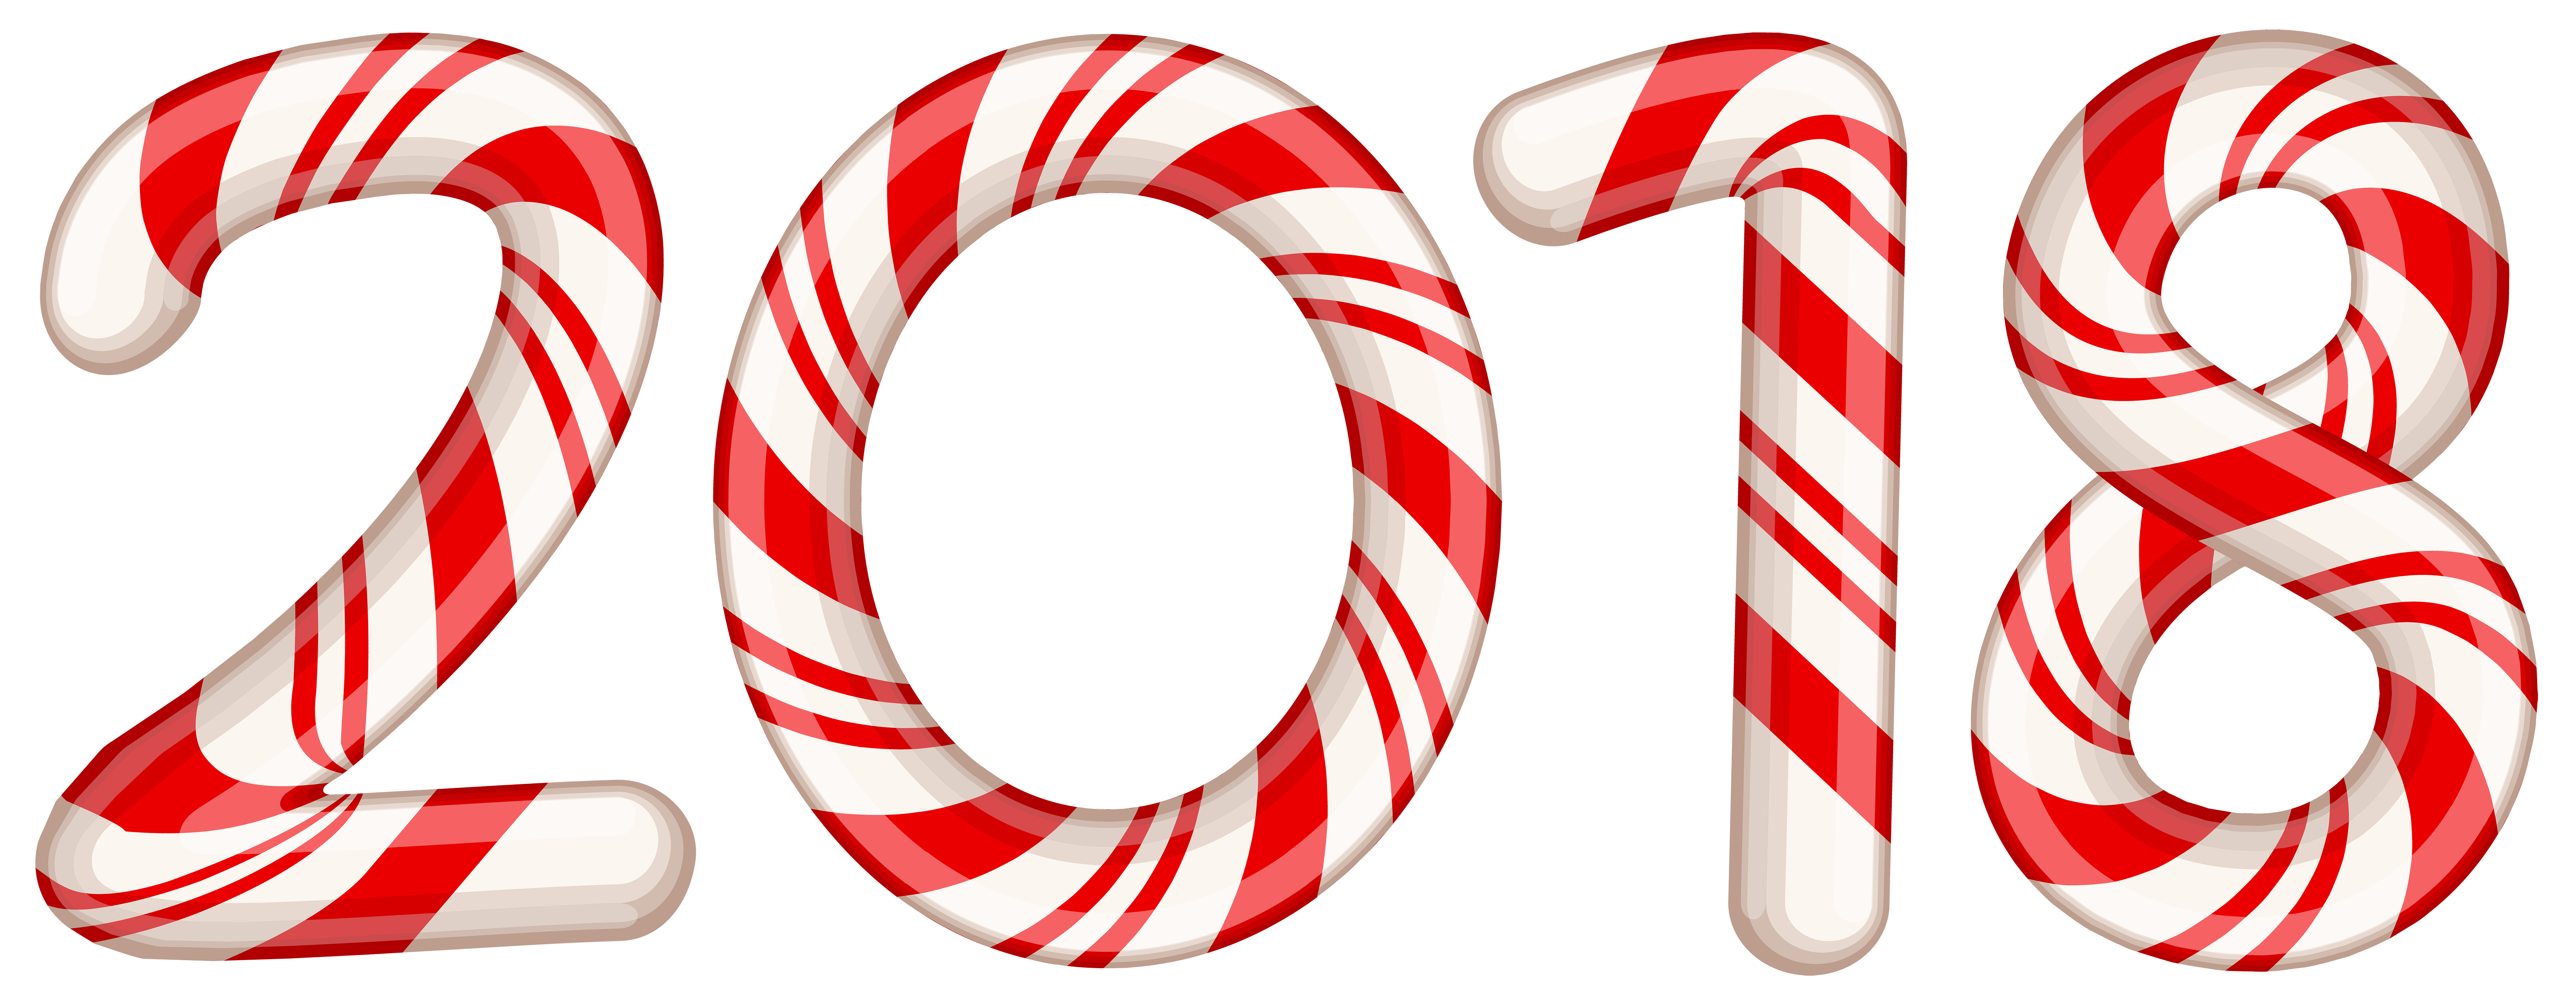 Cane drawing christmass. Christmas candy clipart at